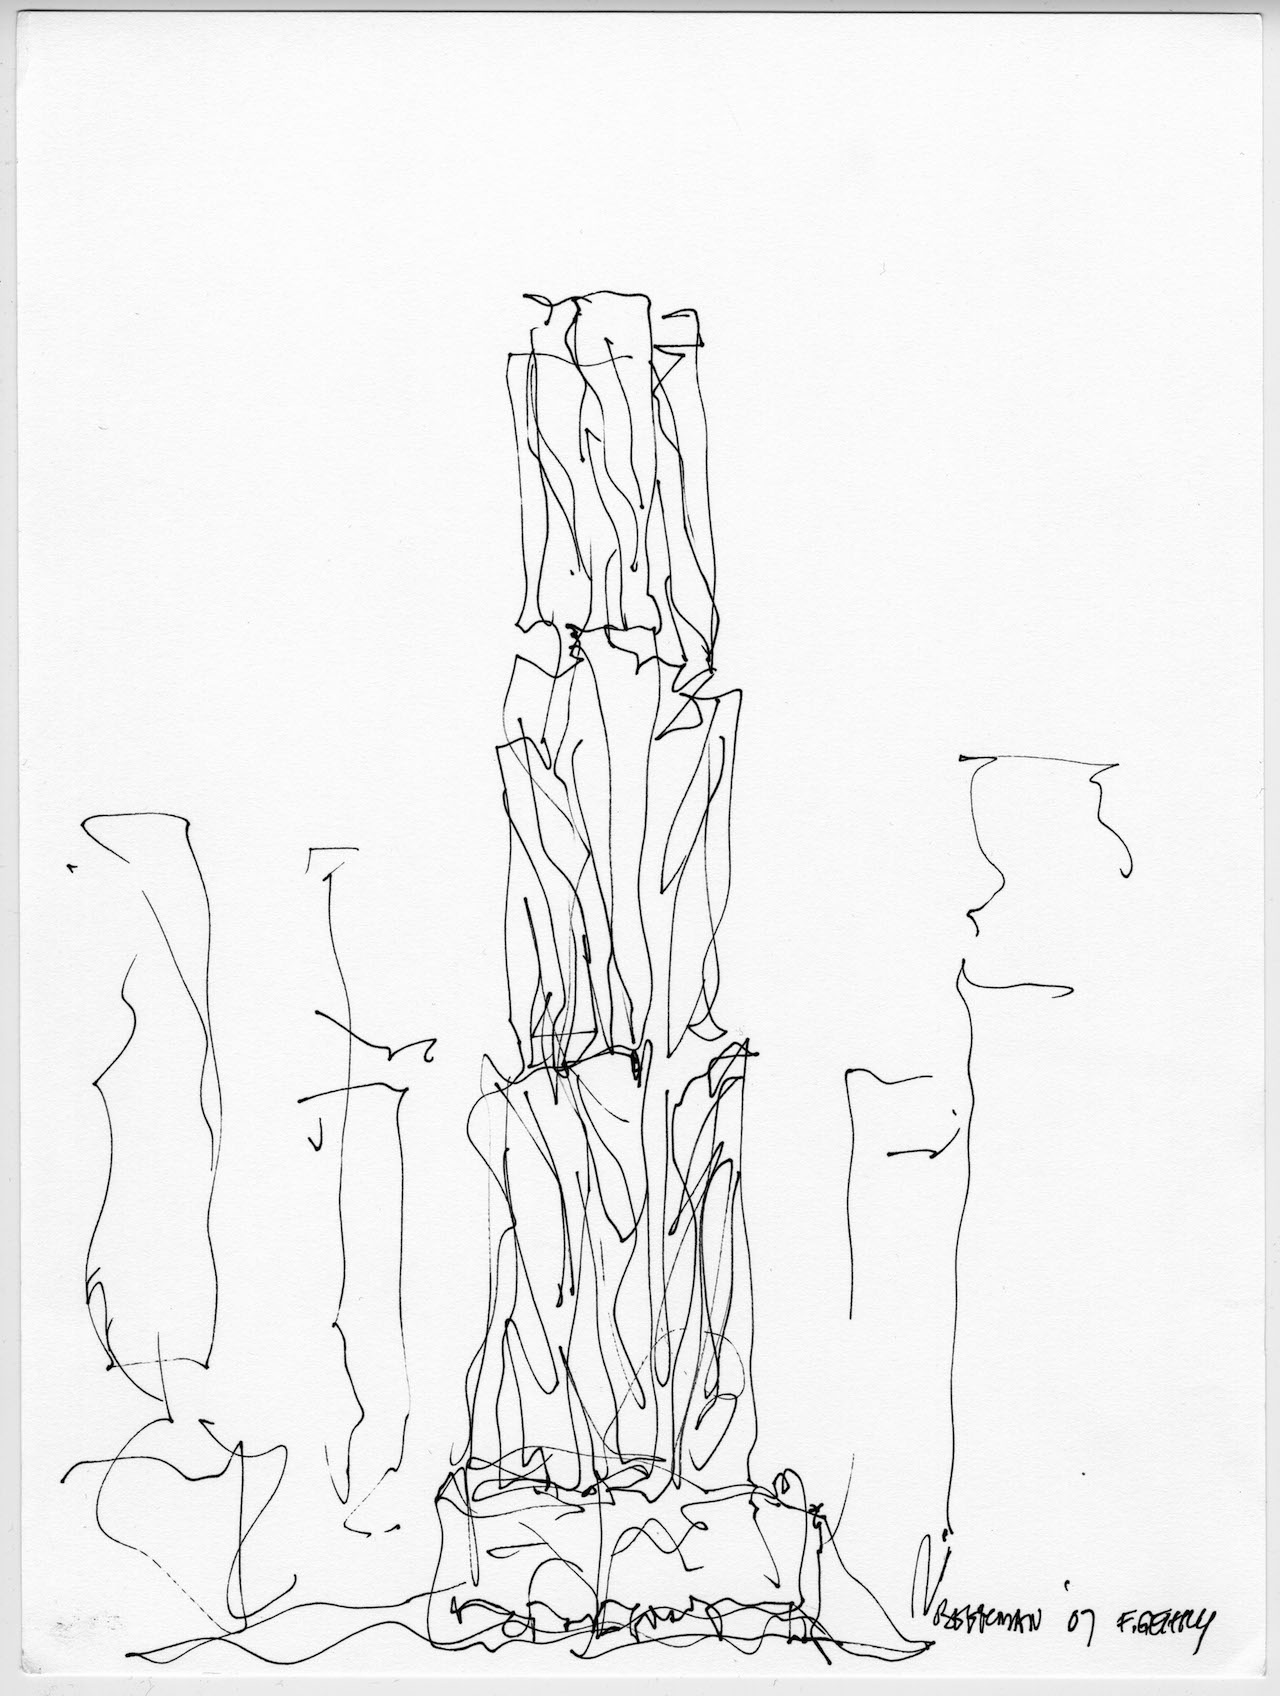 1280x1696 The Freeform Scribbles That Give Rise To Frank Gehry's Buildings